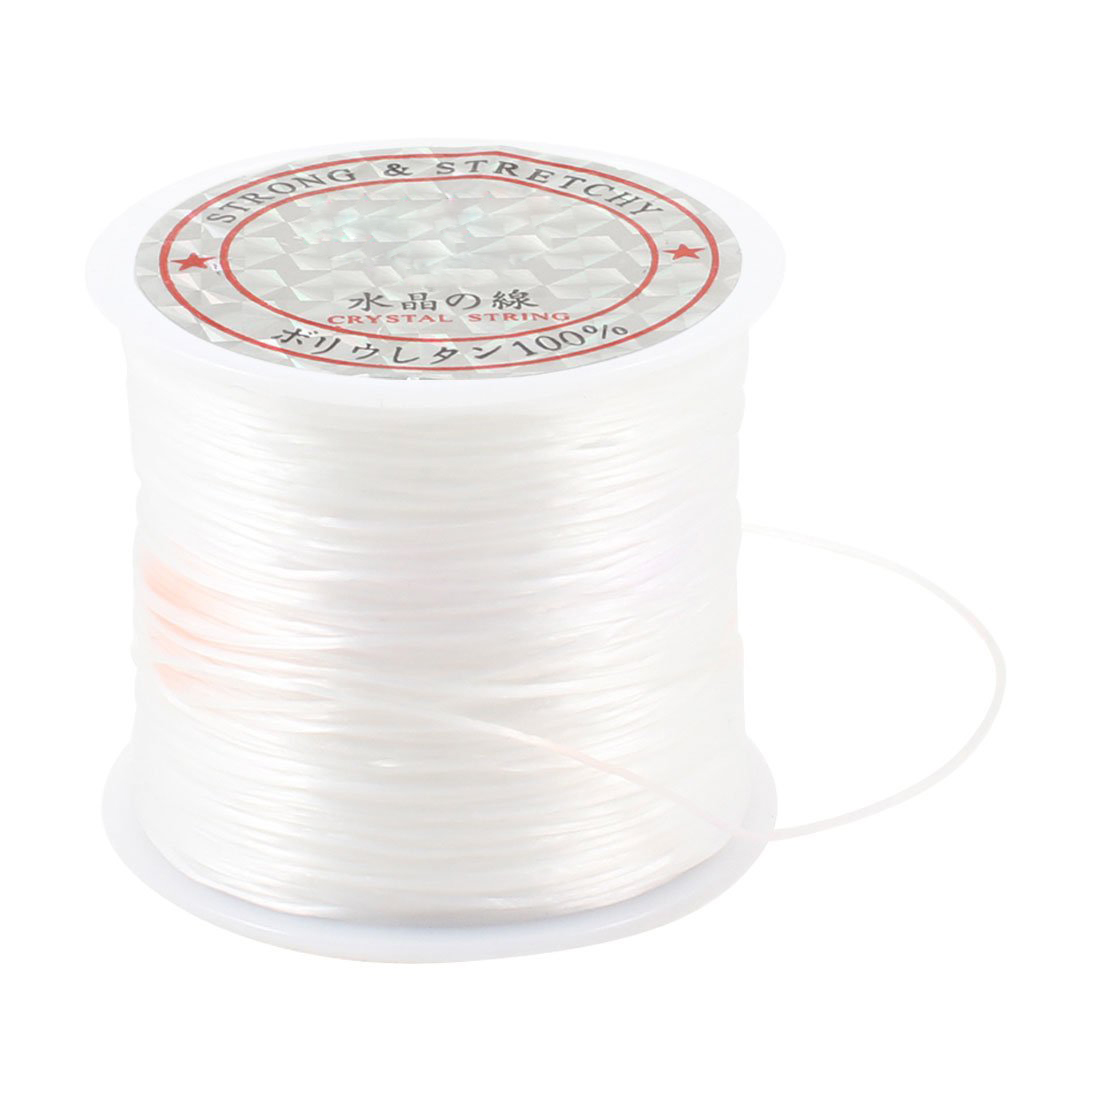 White Elastic Stretchy Crystal Line Jewelry Beading Thread Spool 100 Meters